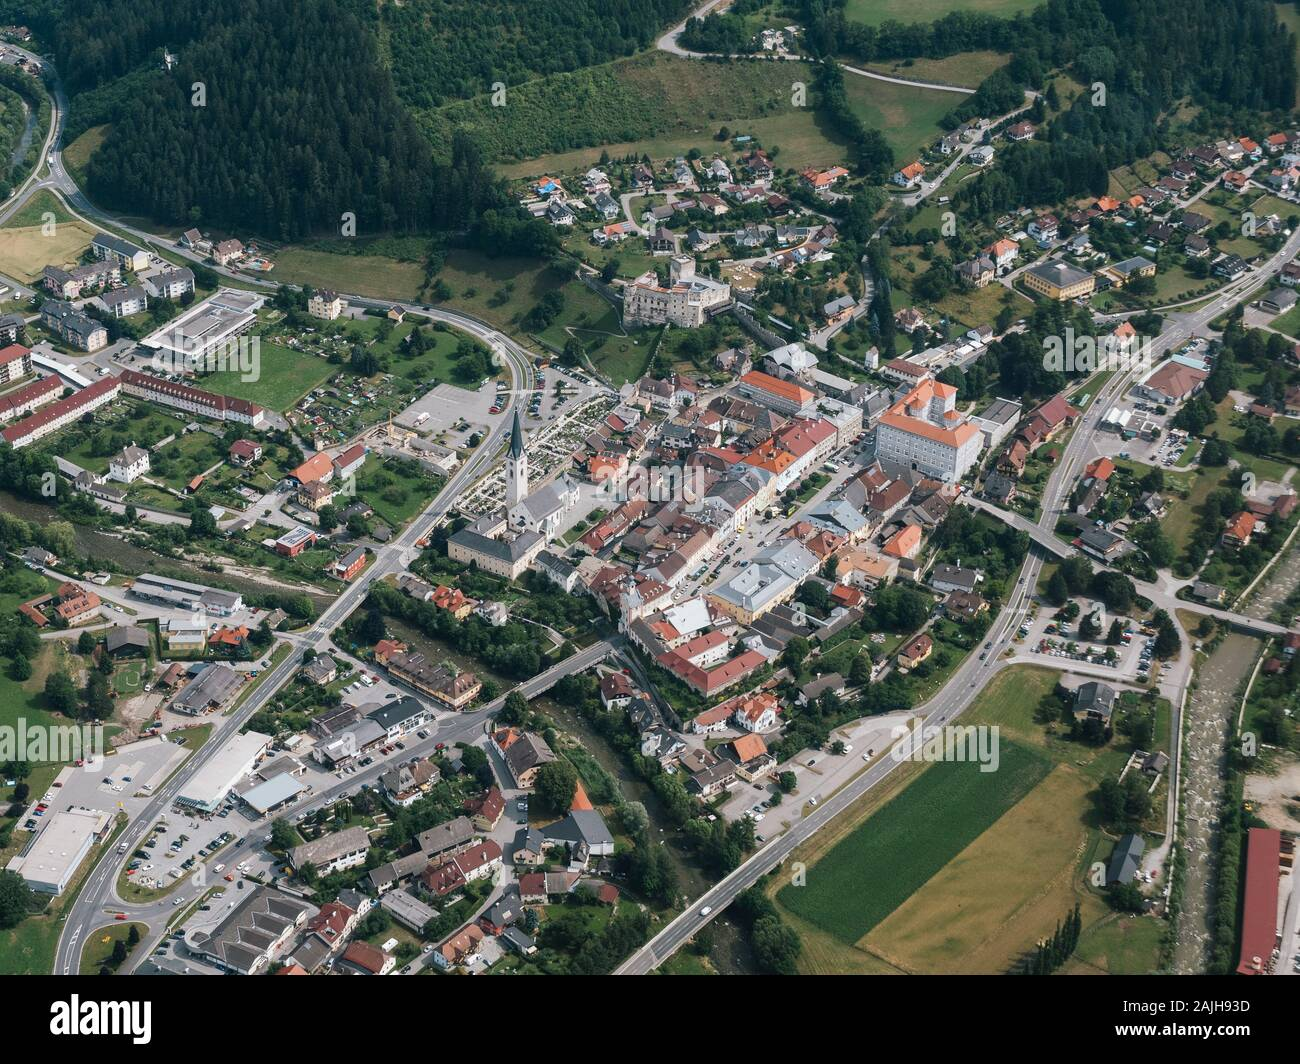 Gmuend in Carinthia, Austria - Aerial View - Medieval Town Center and Tourist Attraction Stock Photo